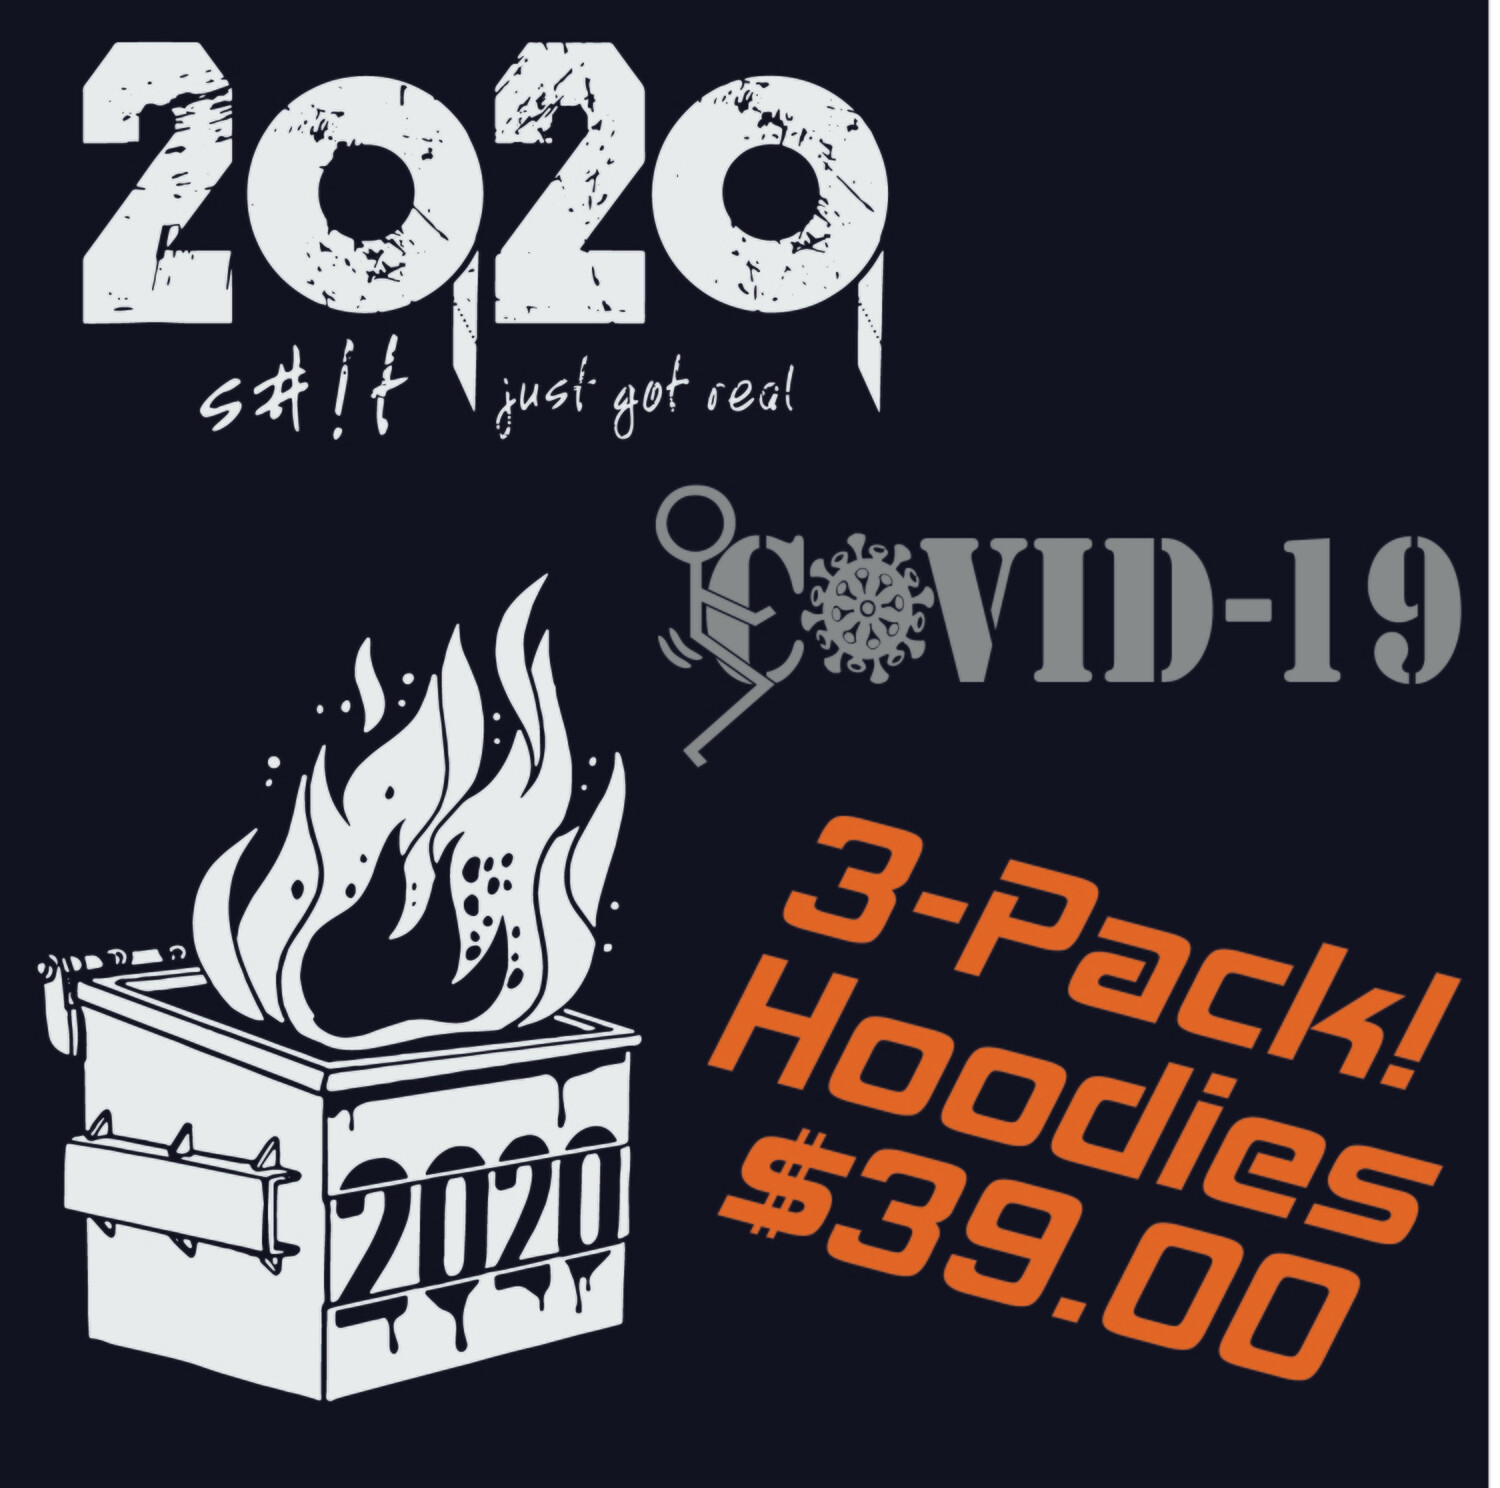 Hoodies 3-PACK DEAL! 2020 Dumpster Fire - F#%K Covid-19 - S#!t Just Got Real